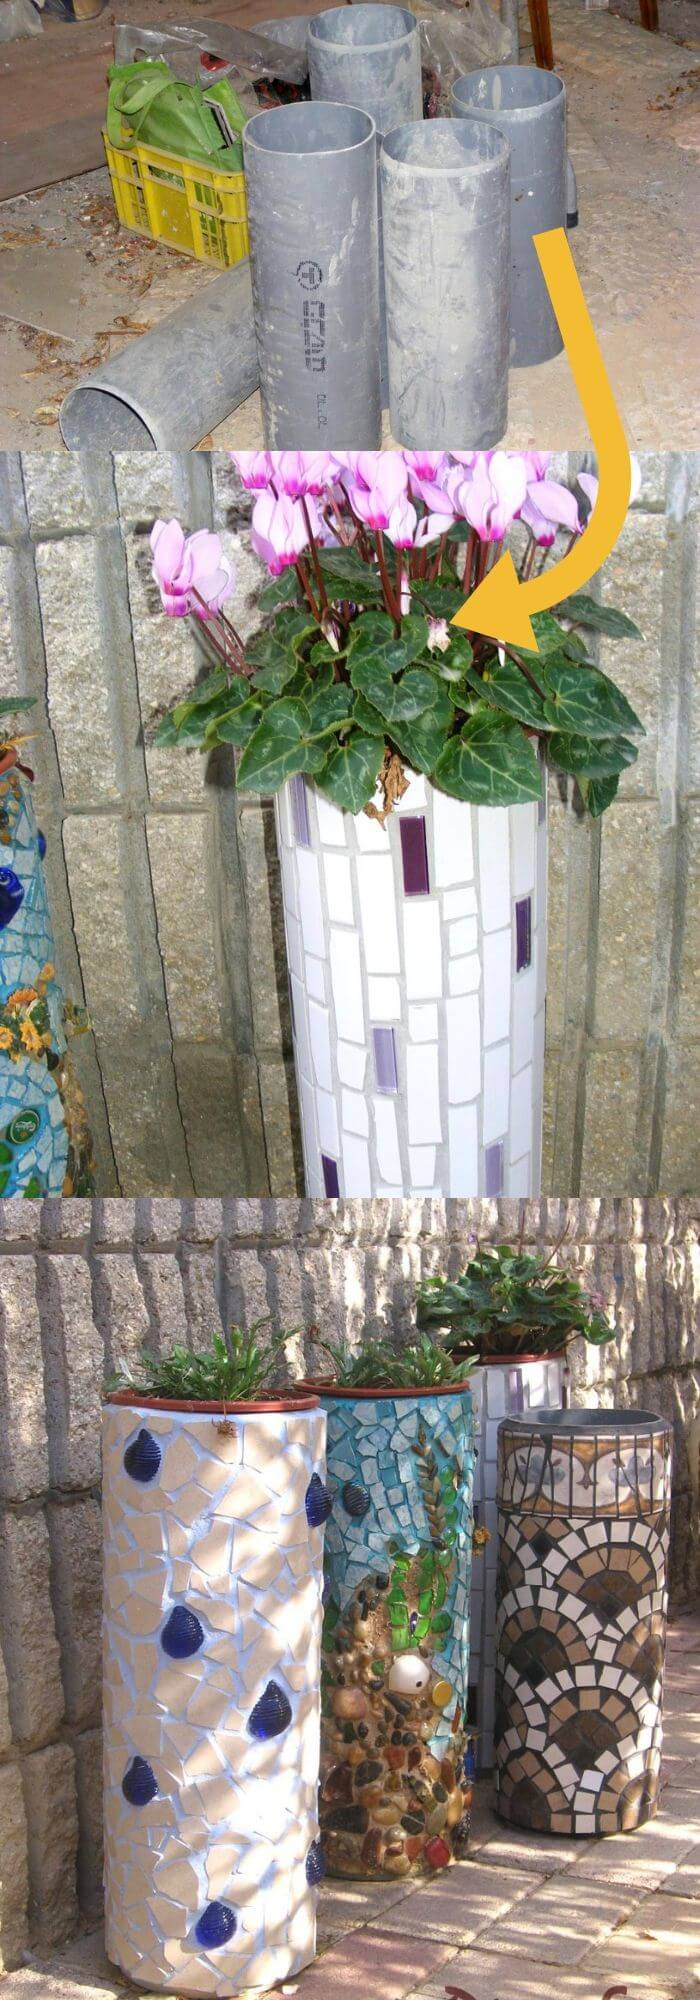 DIY PVC Pipe Planters for Your Garden Mosaic: Flower holder from PVC pipe